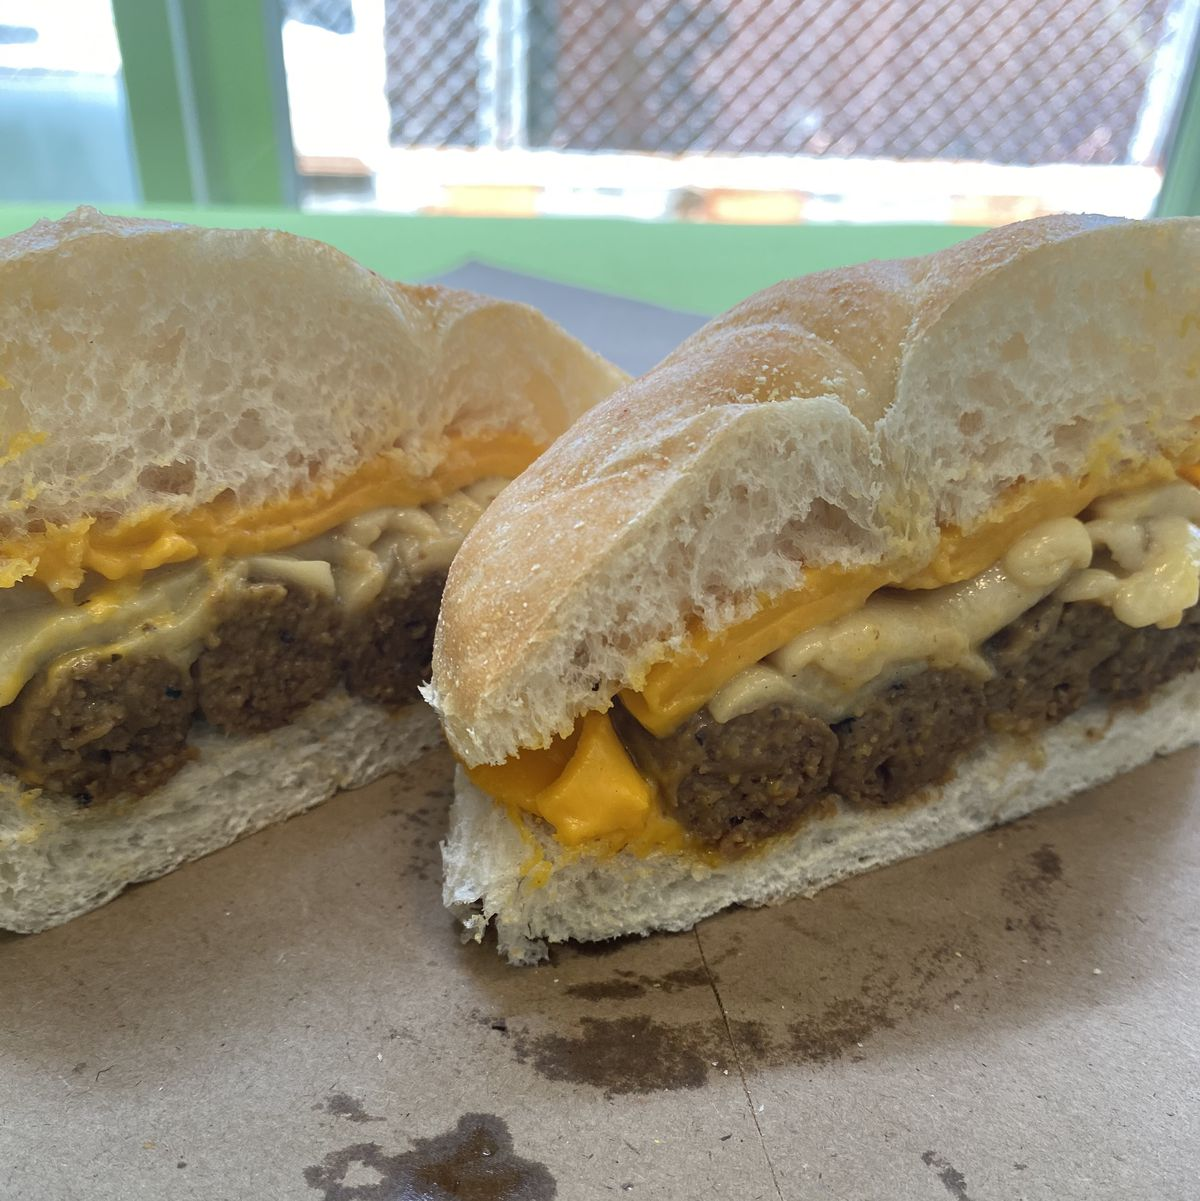 Two halves of a sausage, egg, and cheese sandwich rest on parchment paper